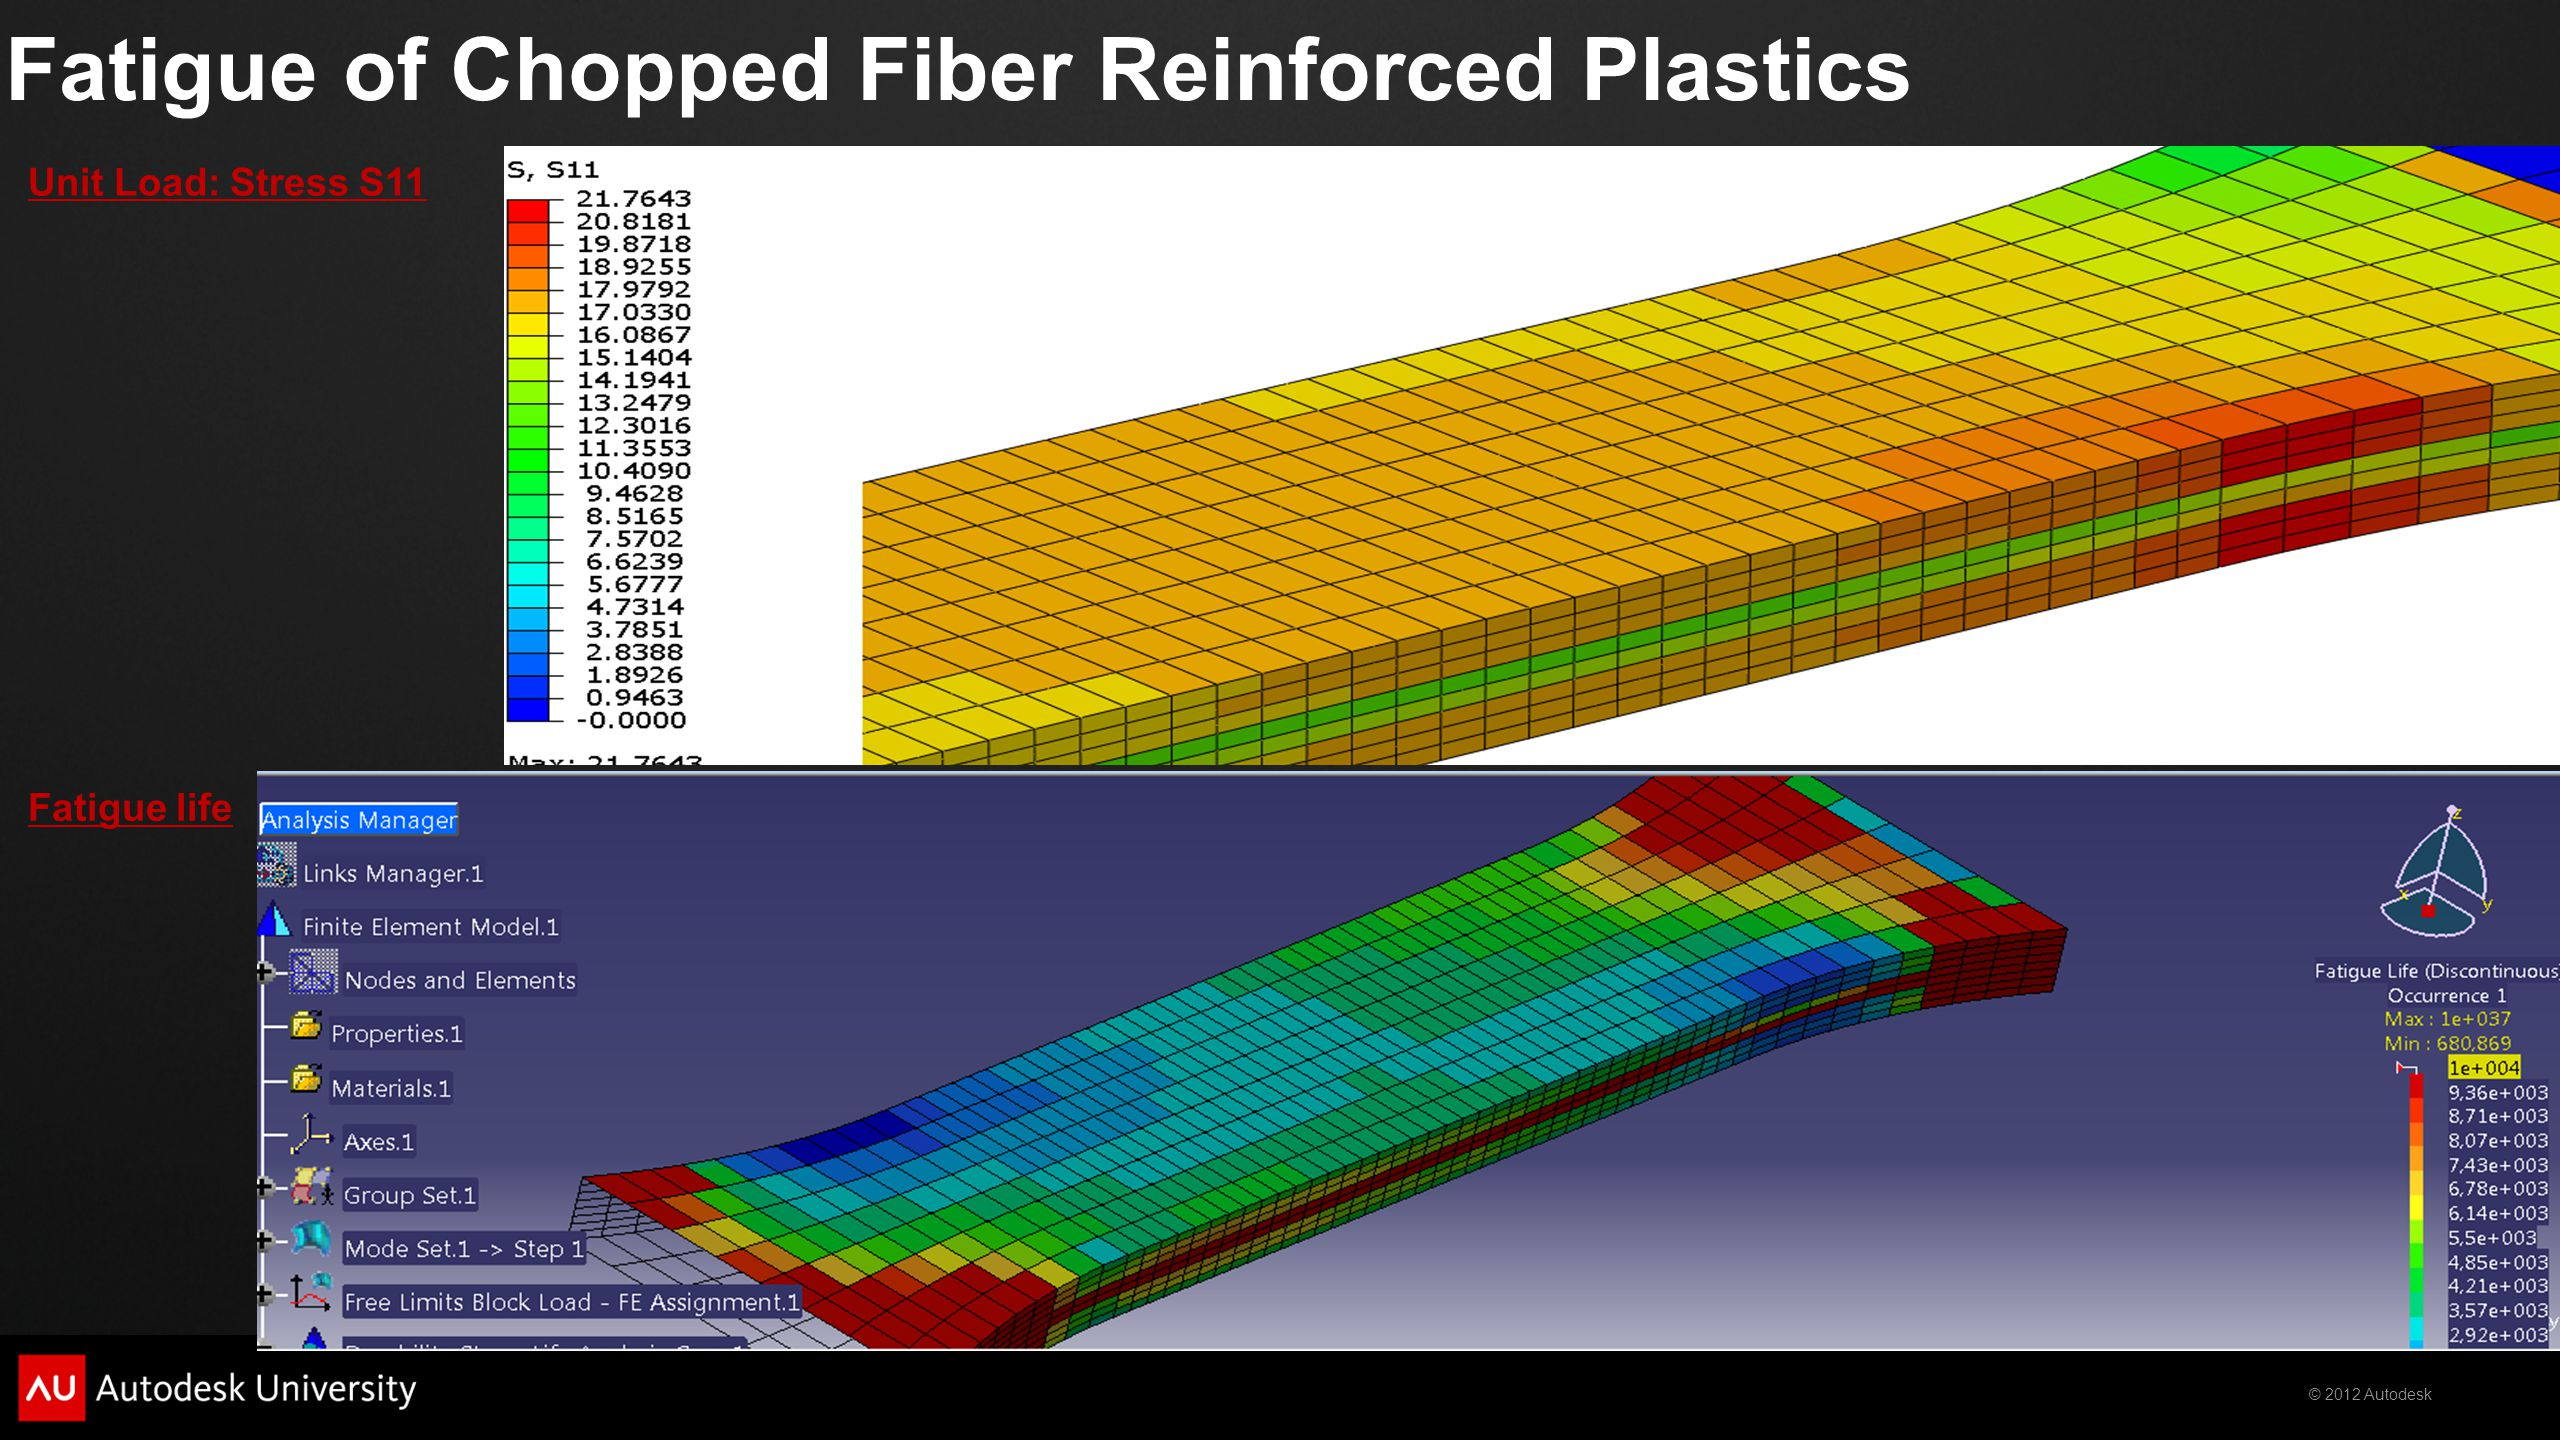 Fatigue of Chopped Fiber Reinforced Plastics